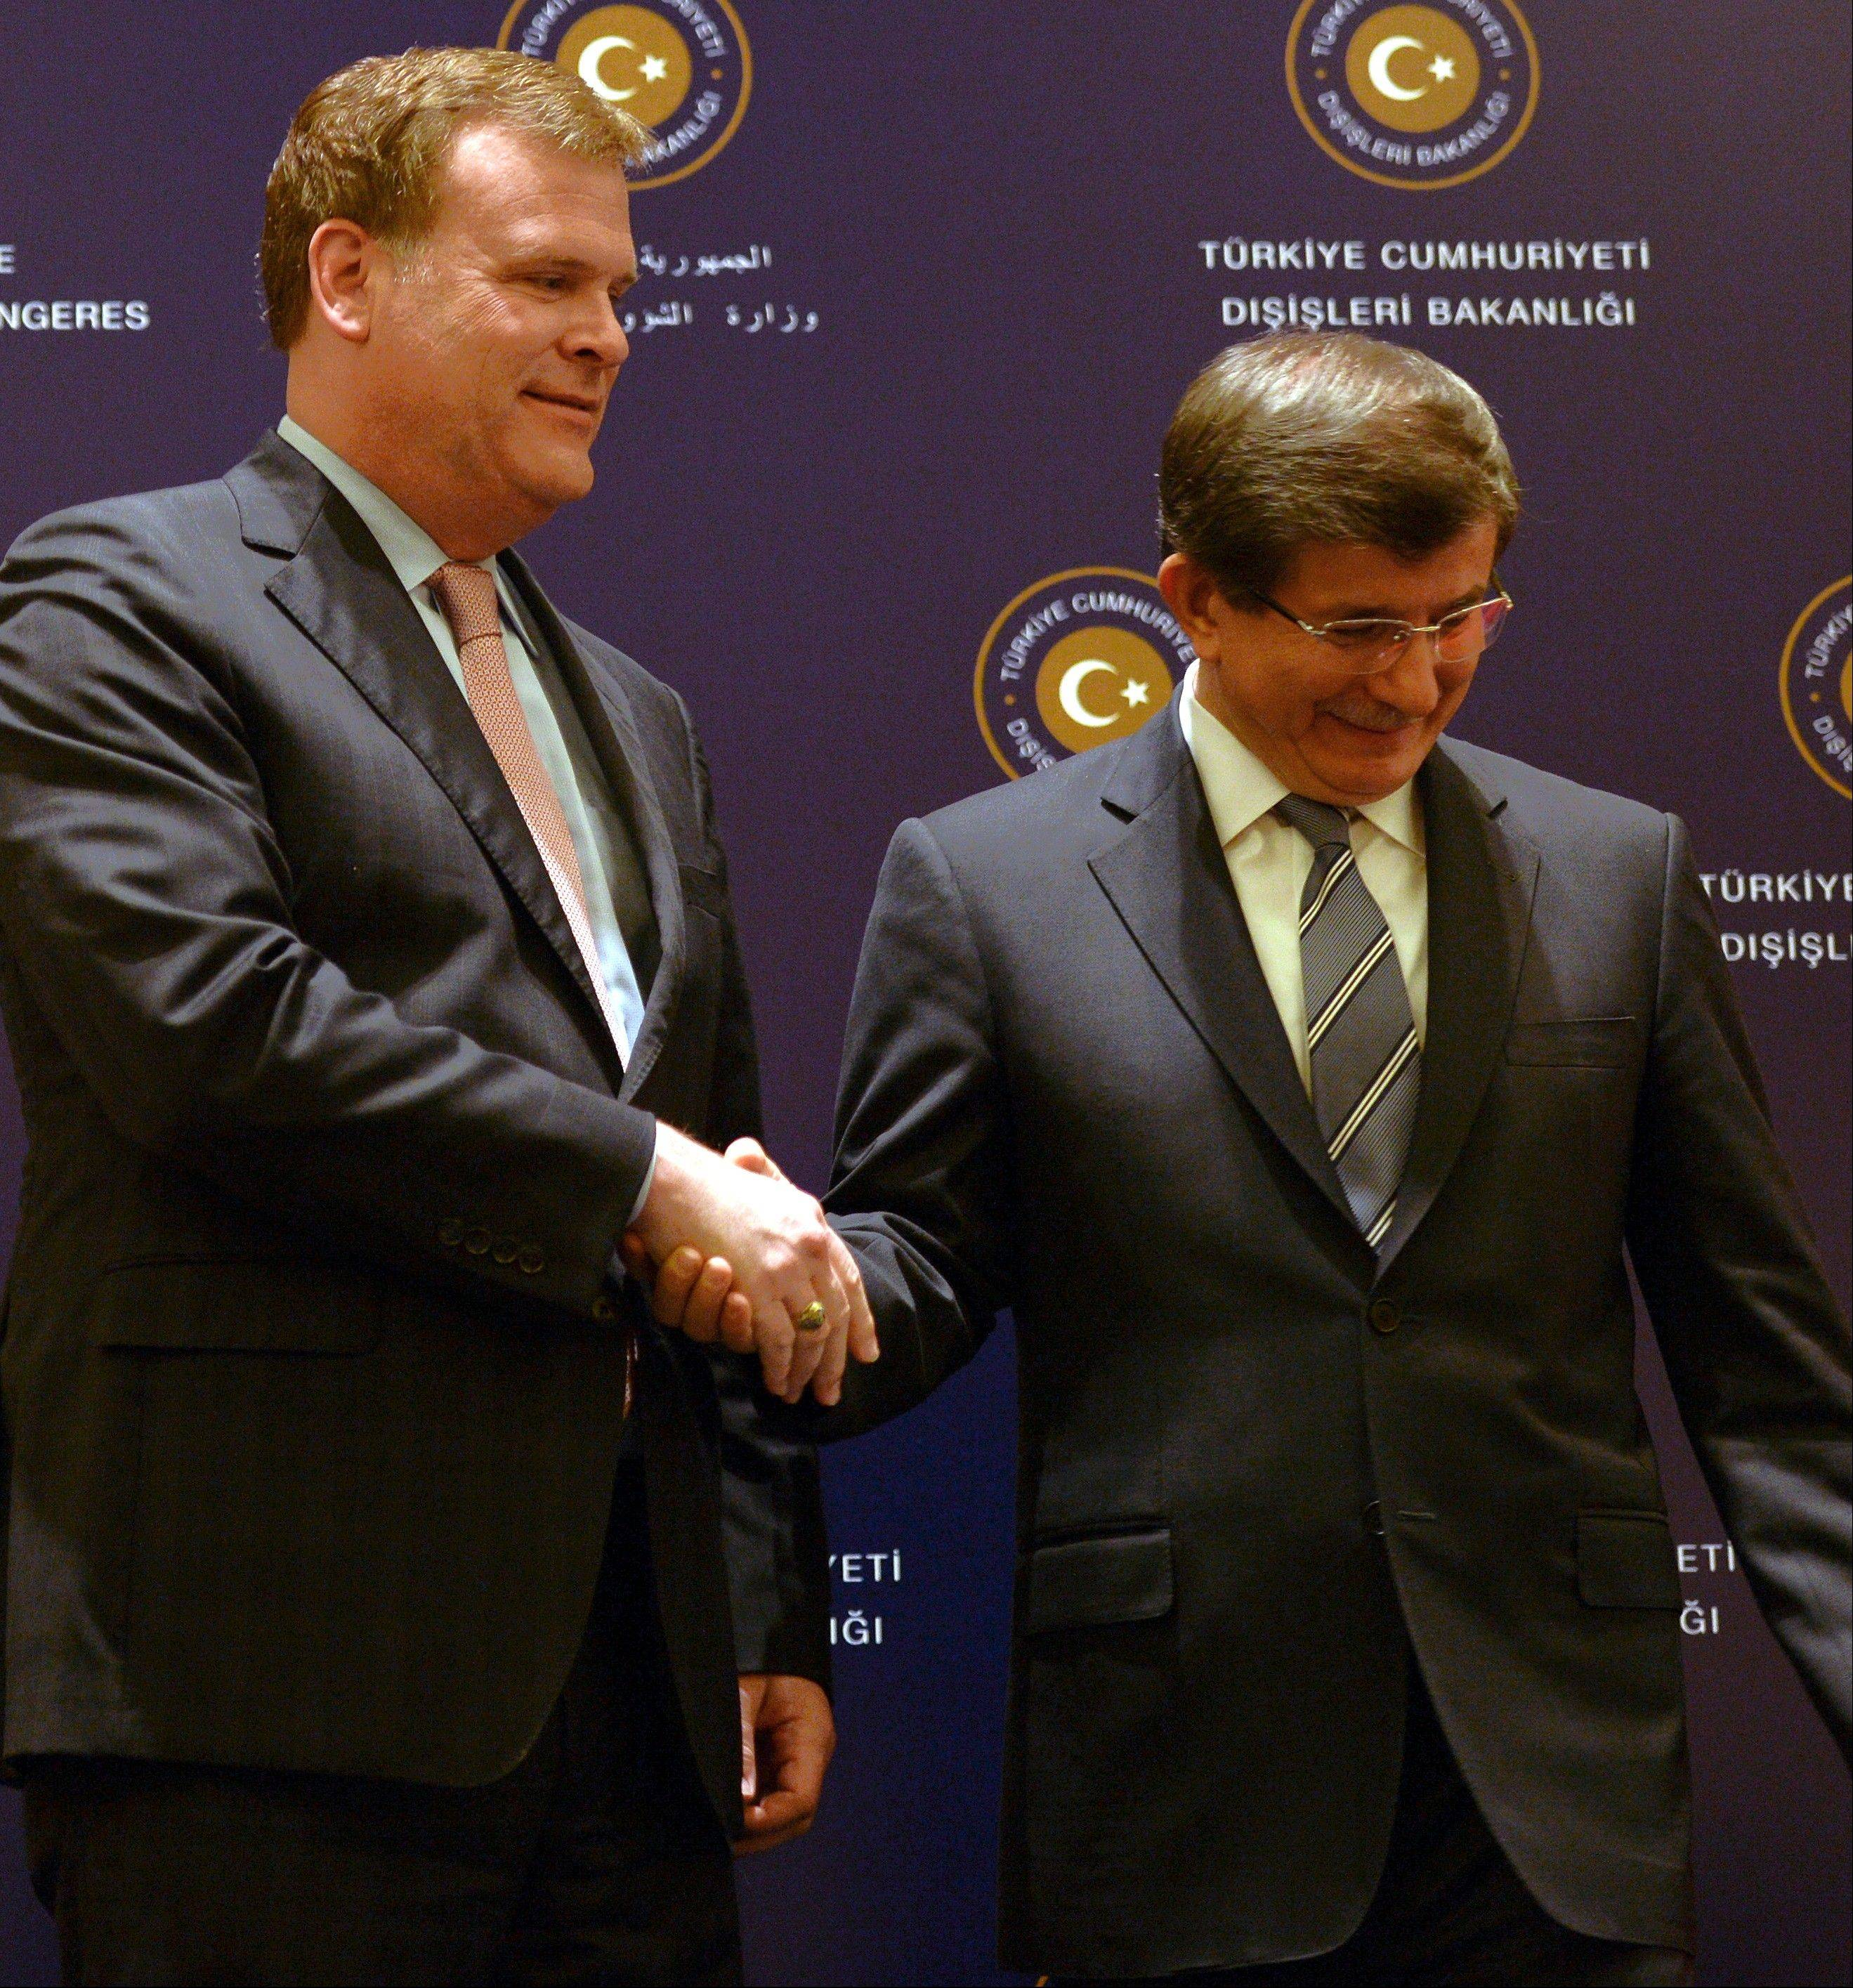 Canadian Foreign Minister John Baird, left, and his Turkish counterpart Ahmet Davutoglu shake hands Saturday in front of the media during a news conference after talks on security and terror threats in the mideast region, in Istanbul, Turkey.